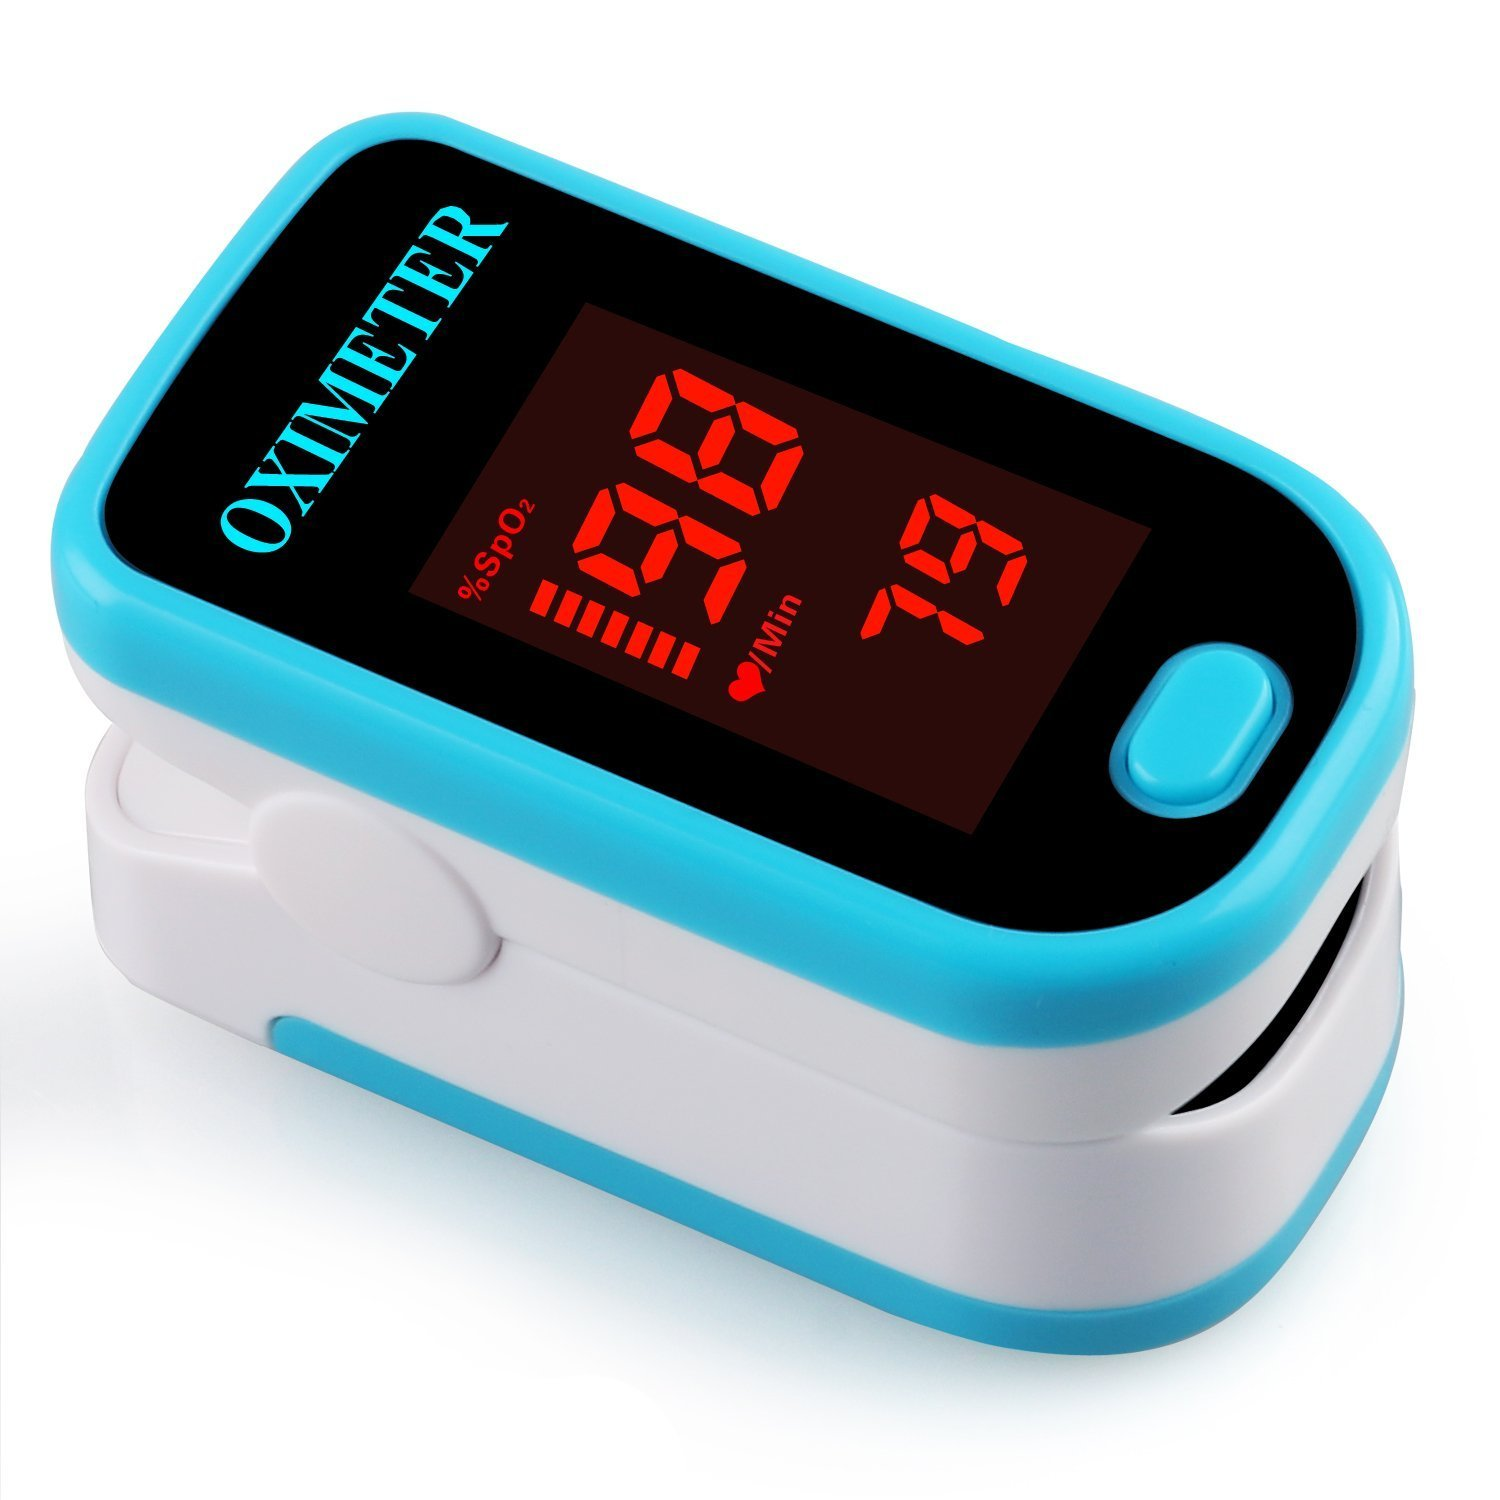 Pulse Oximeter, Finger Portable FDA Approved Digital Blood Oxygen and Pulse Sensor Meter with Alarm SPO2 For Adults and Children (Blue)